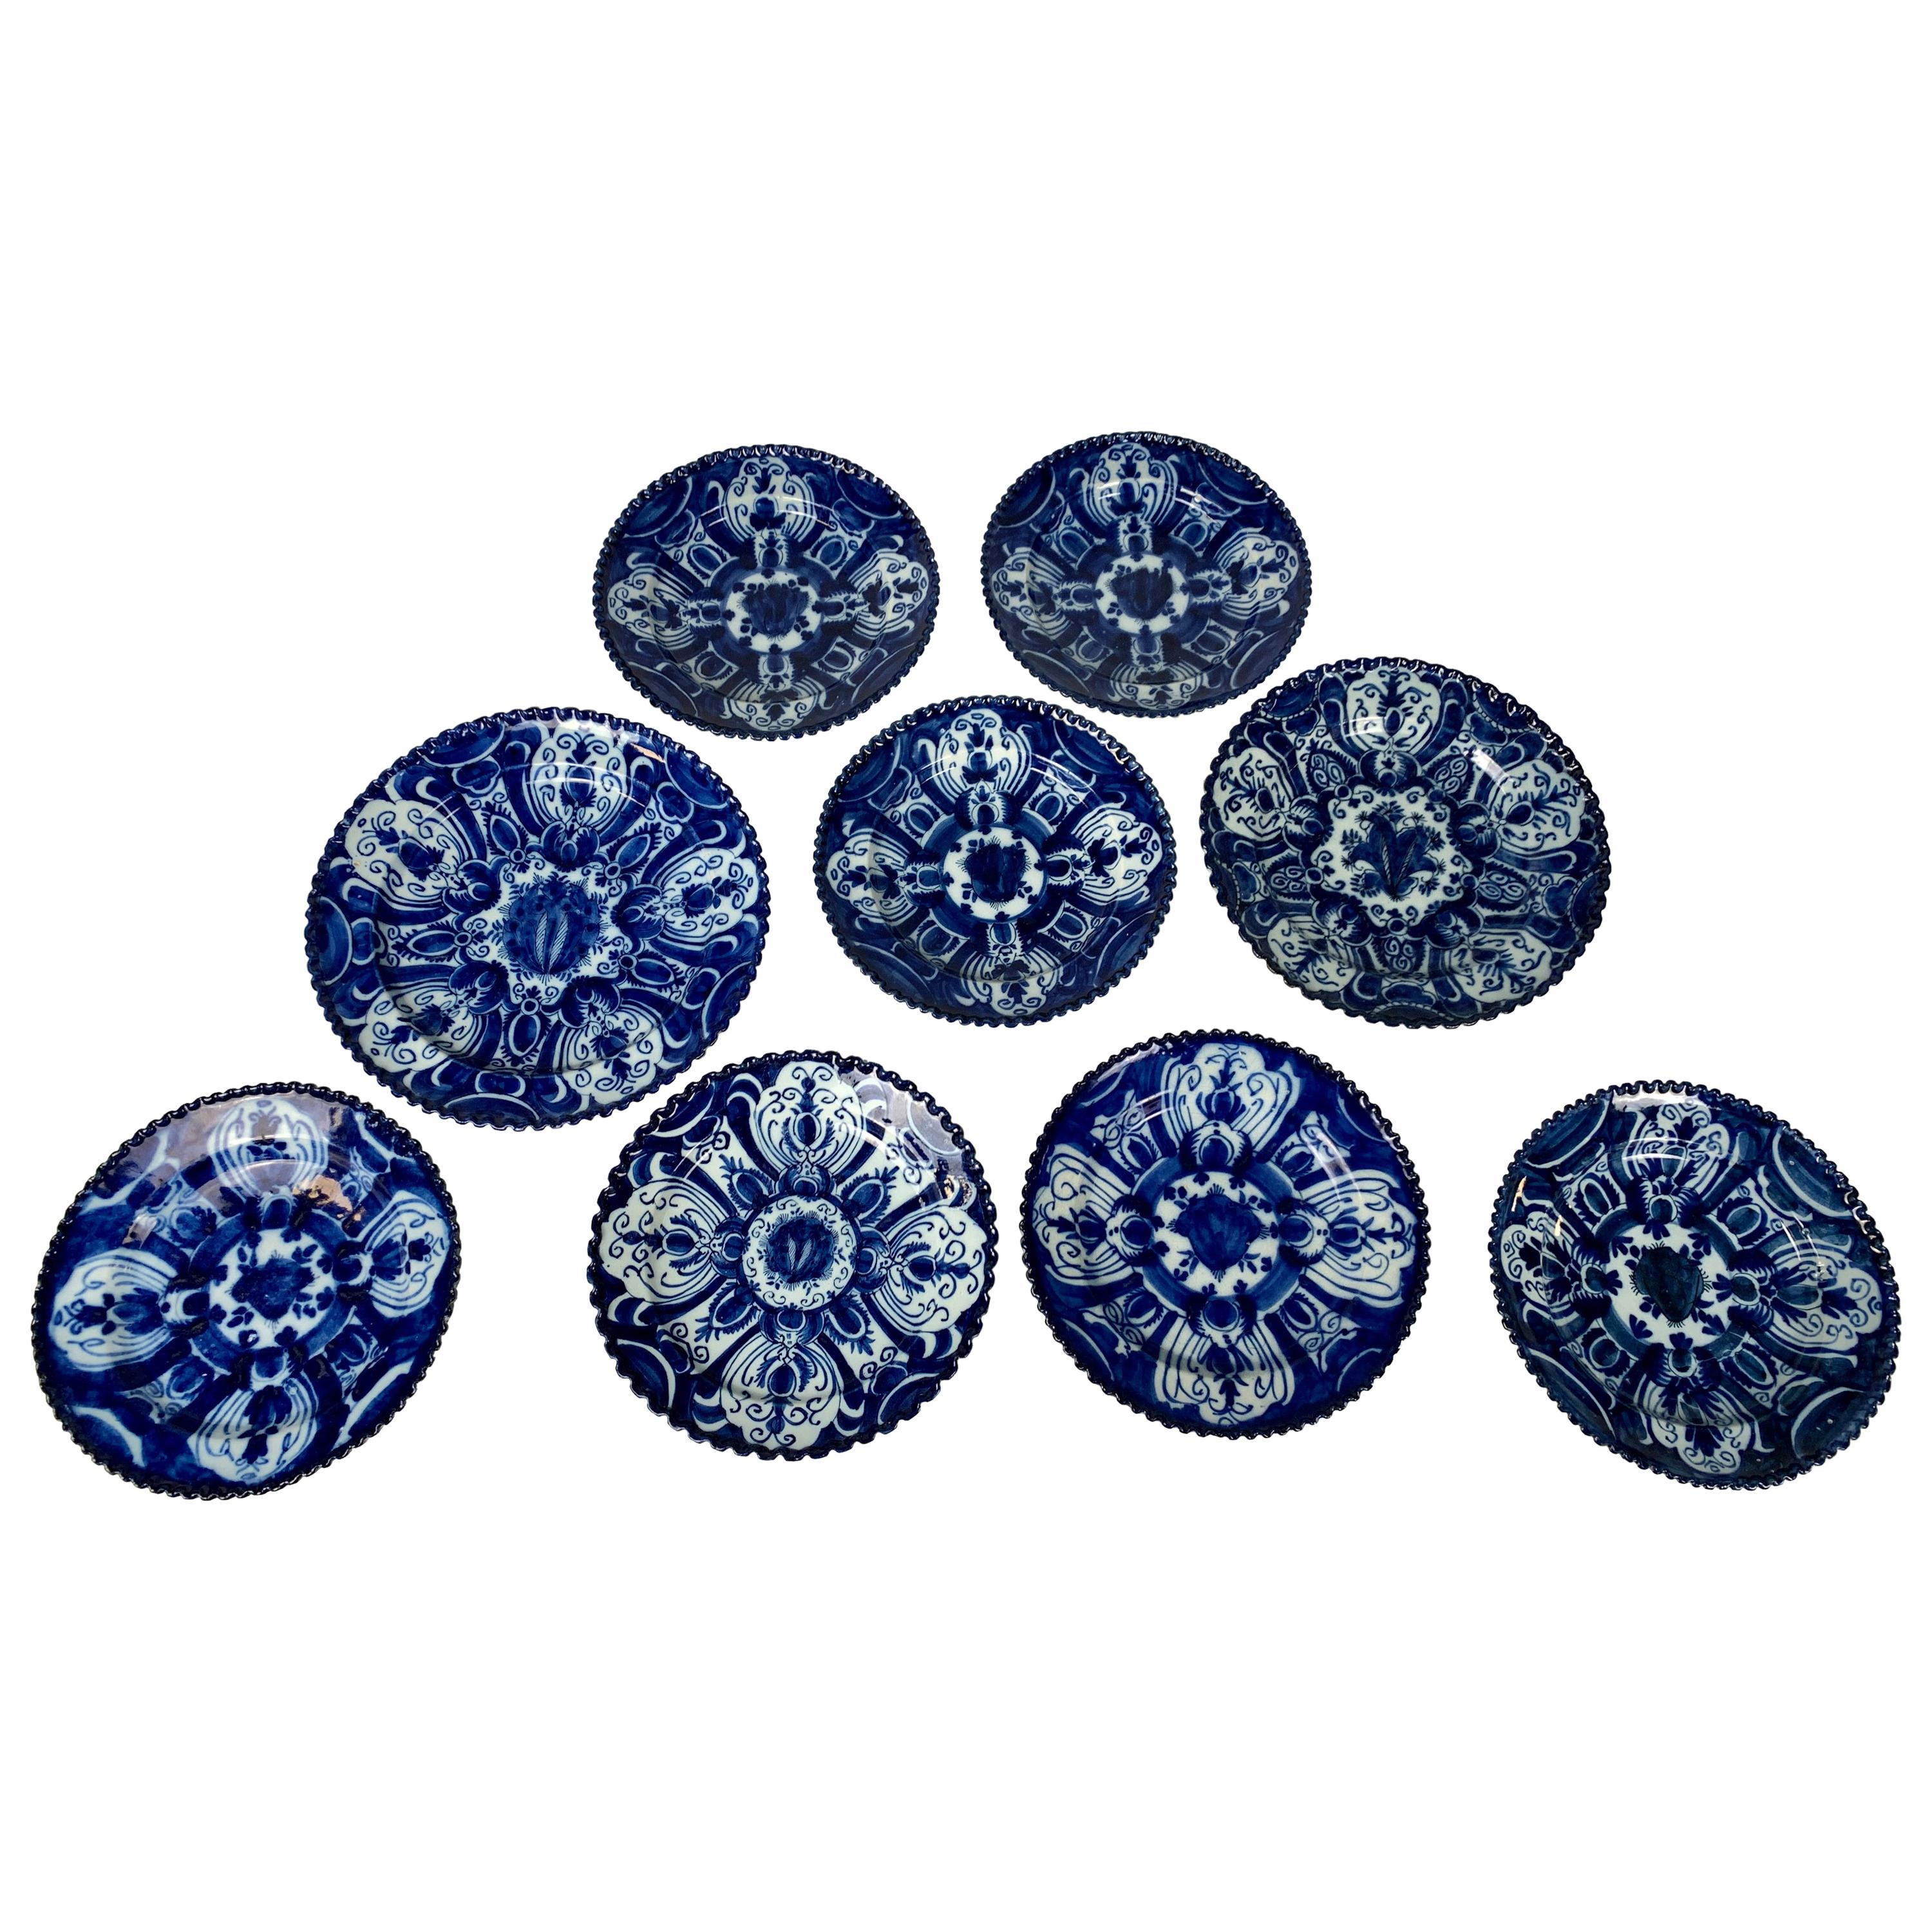 Set of Nine Blue and White Dishes Dutch Delft Hand-Painted 18th Century C-1770